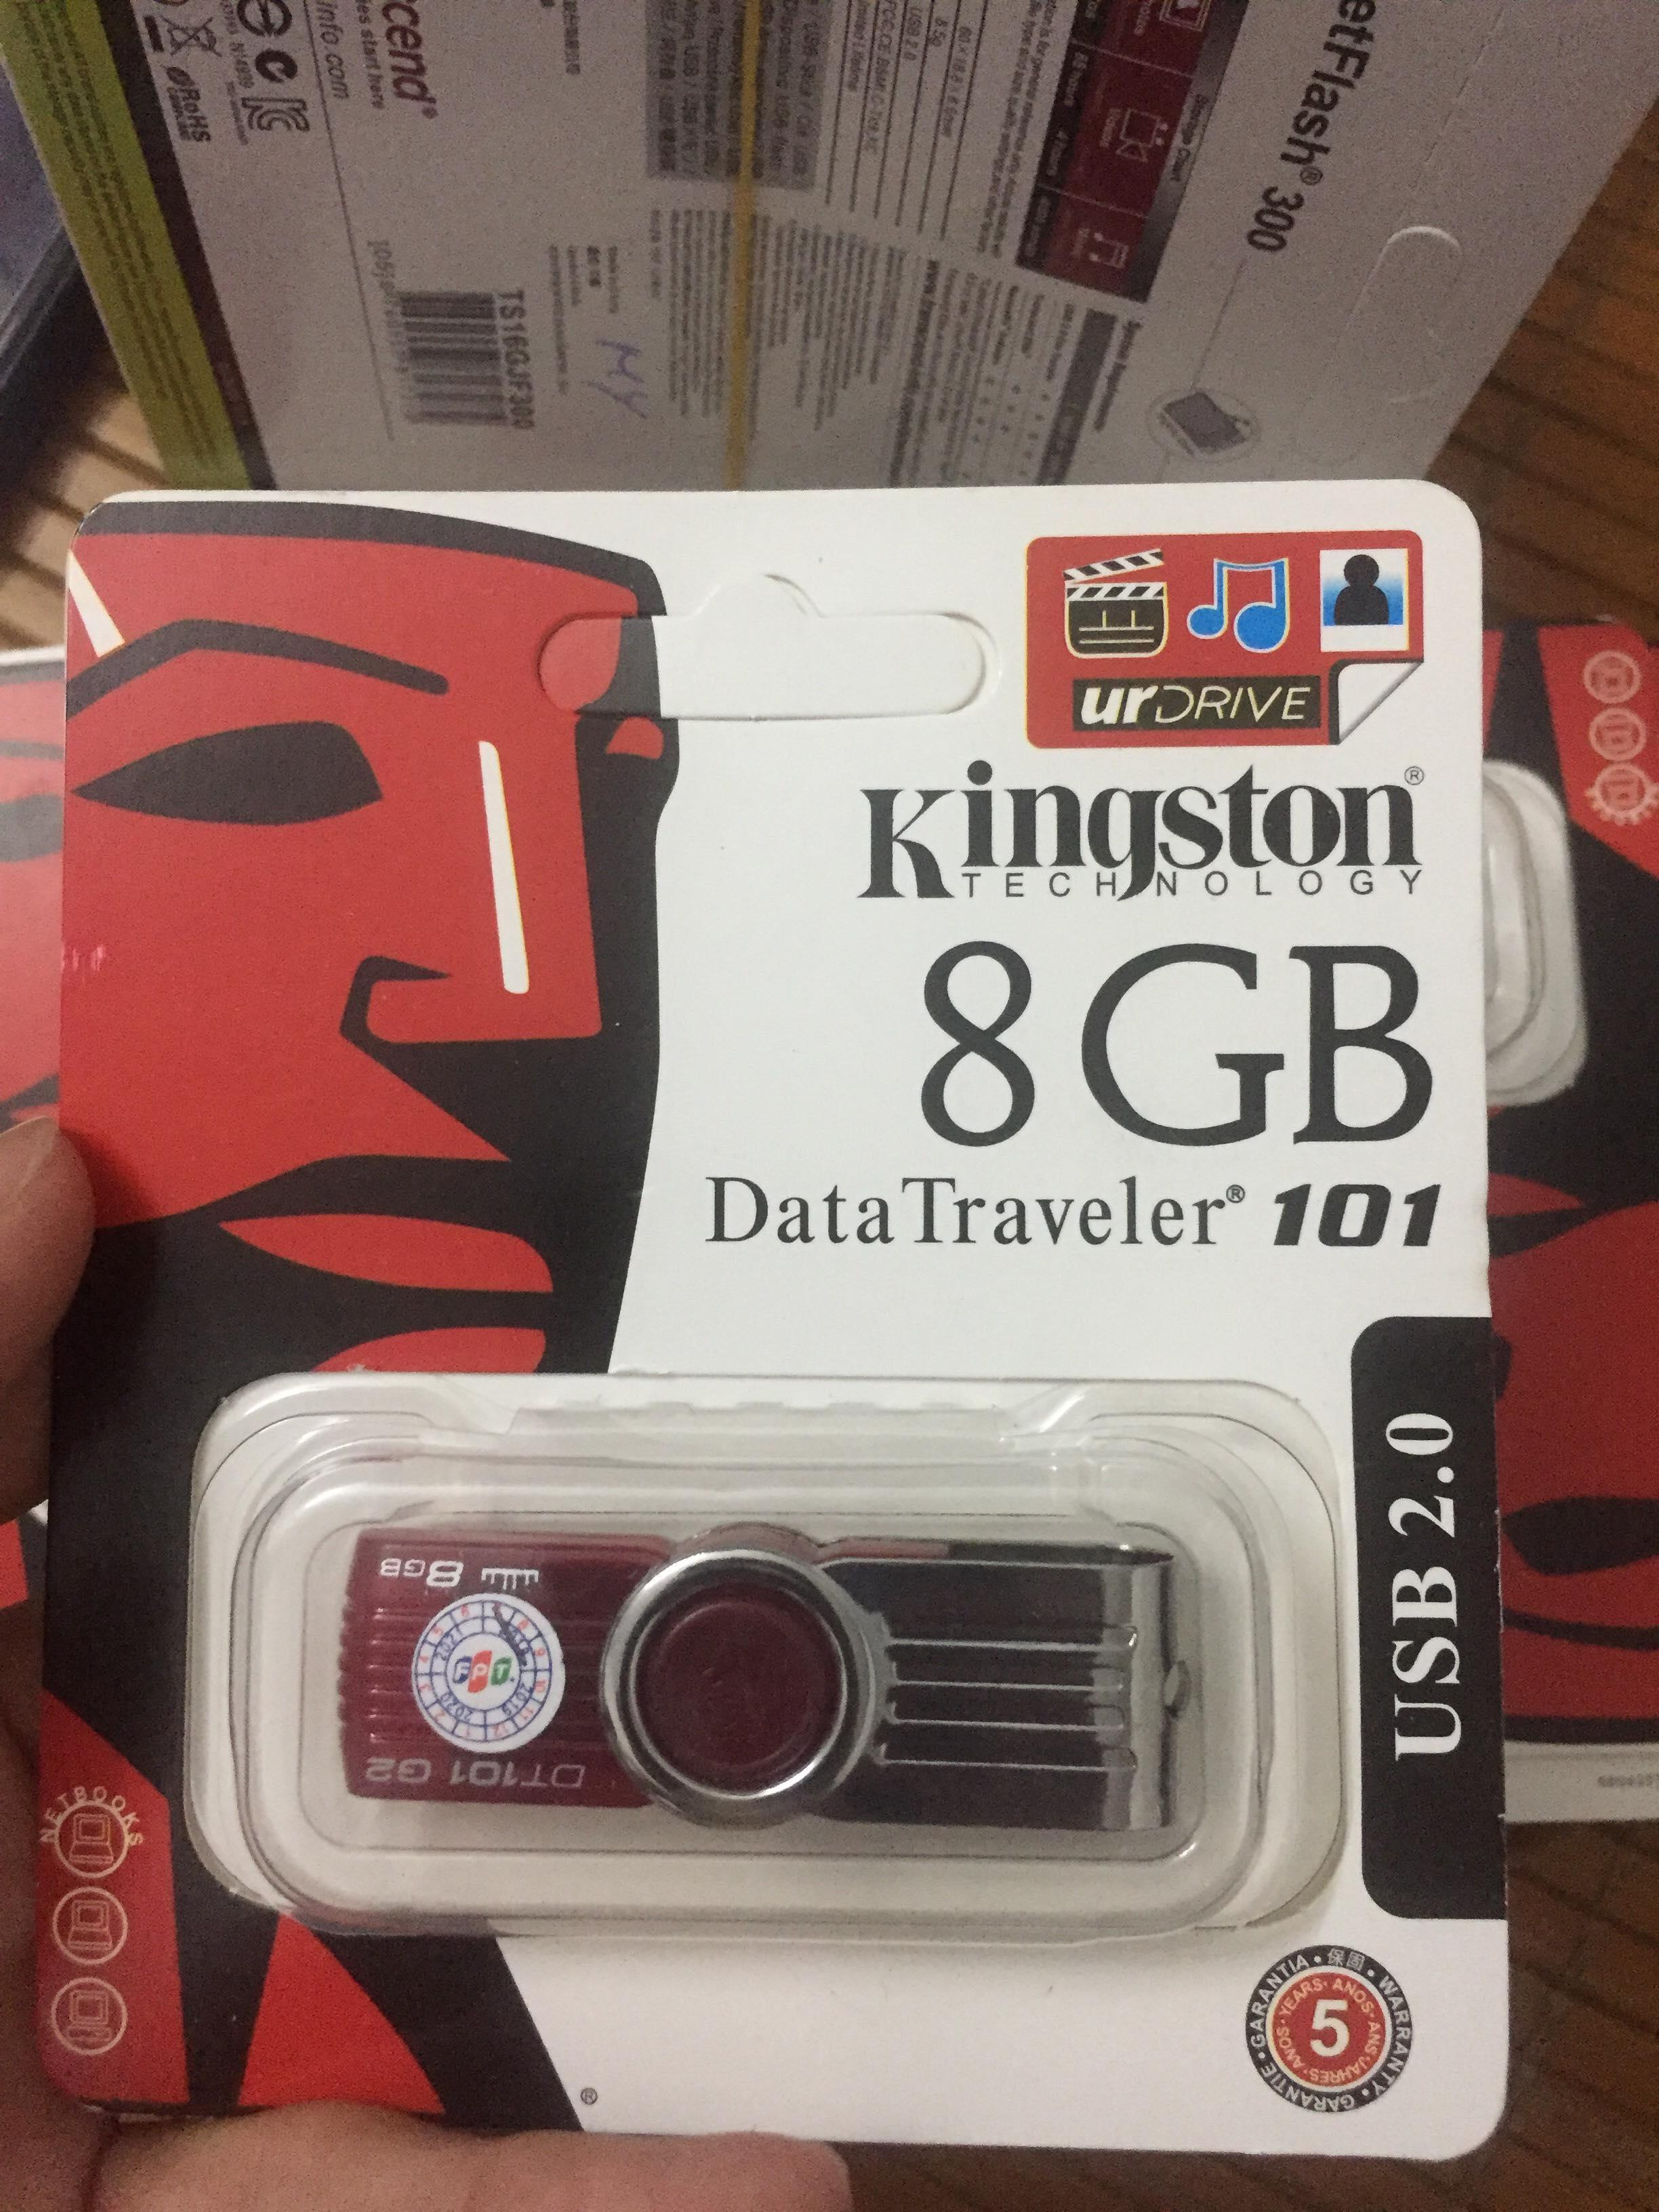 Deal Ưu Đãi USB 2.0 8GB Kingston